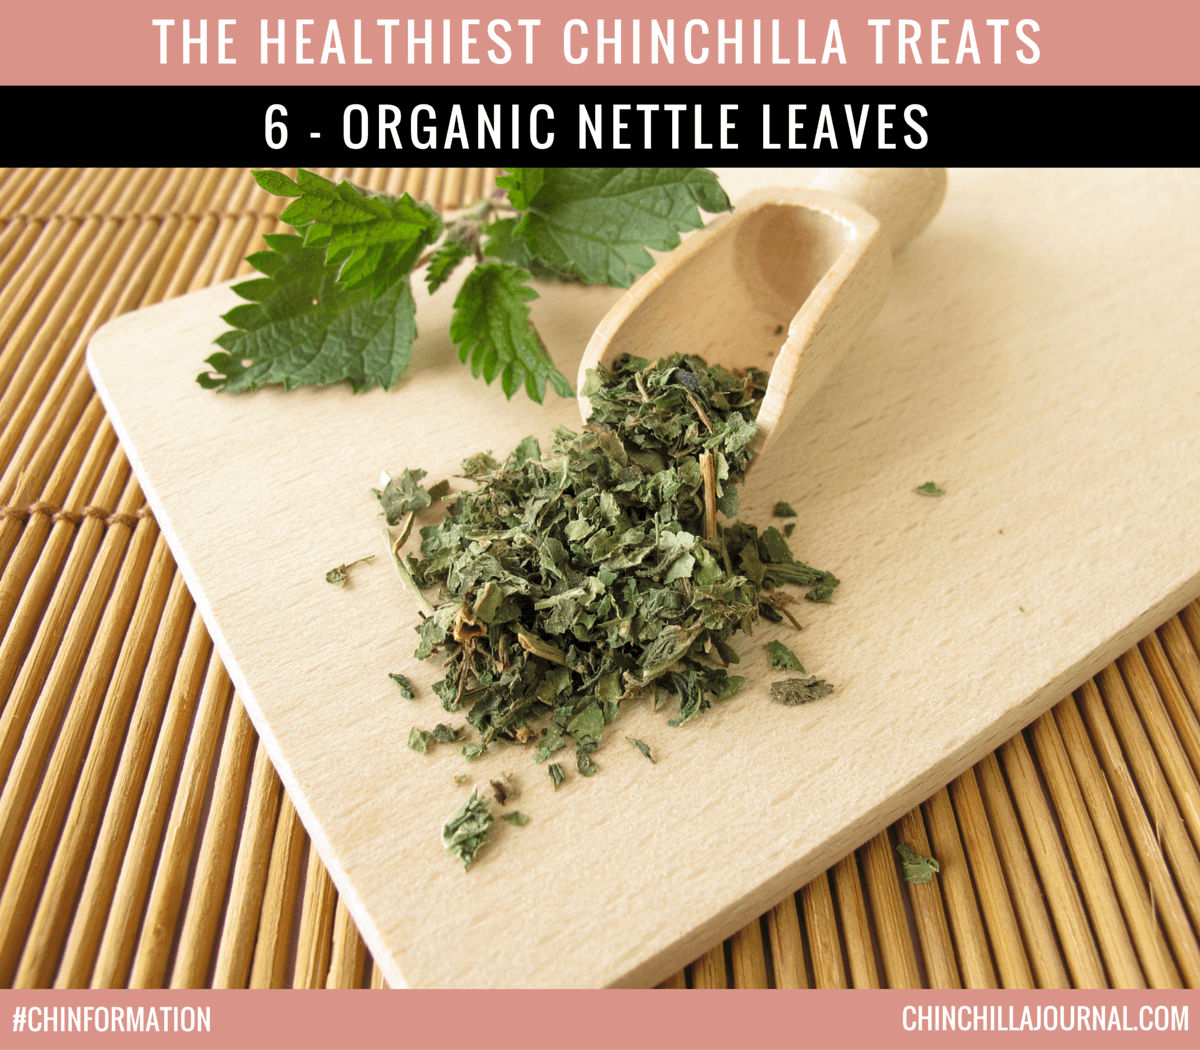 The Healthiest Chinchilla Treats - 6 - Organic Nettle Leaves